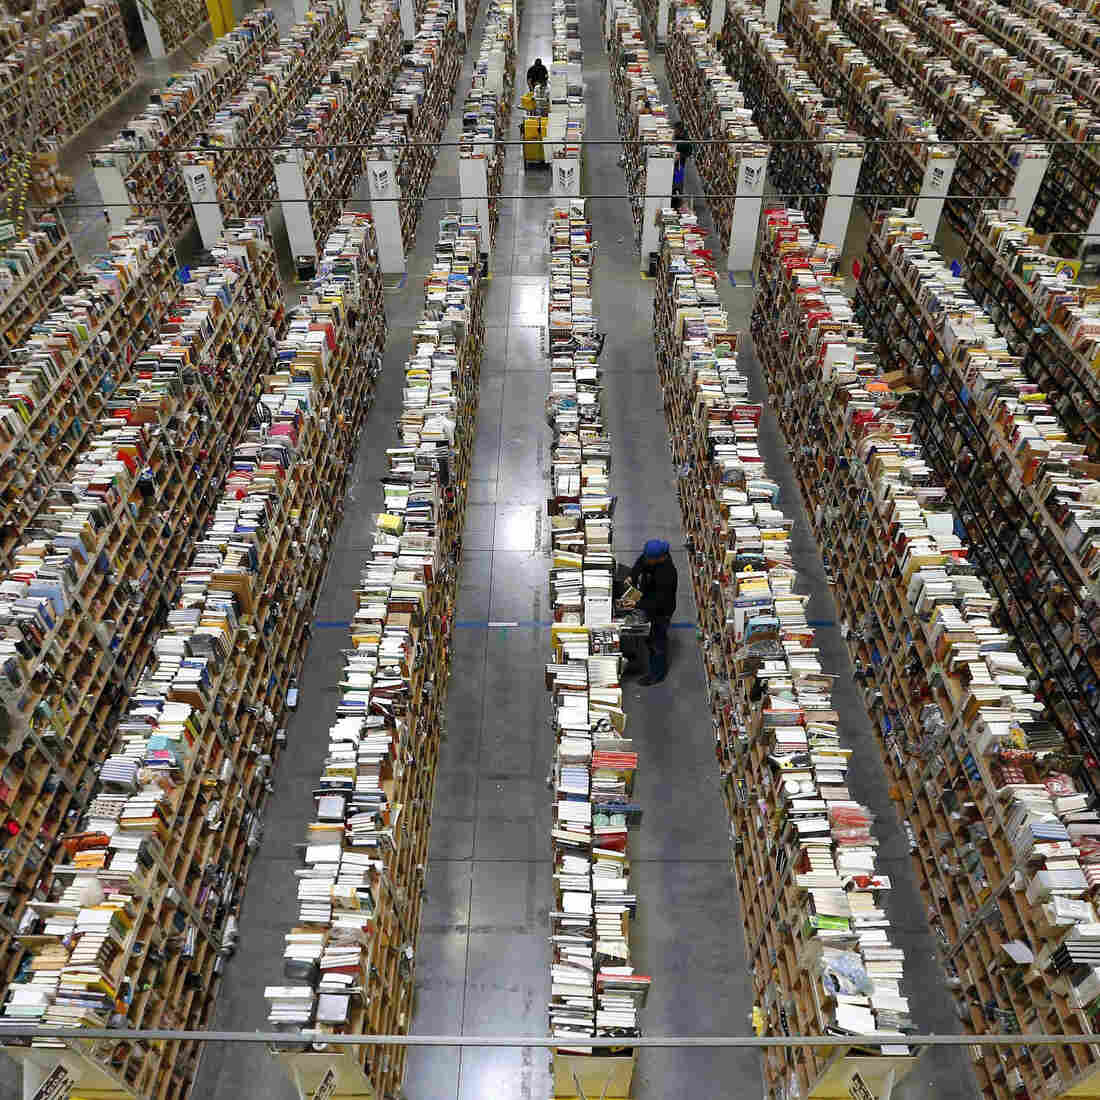 An Amazon.com employee stocks products along one of the many miles of aisles at an Amazon.com Fulfillment Center in Phoenix last month.